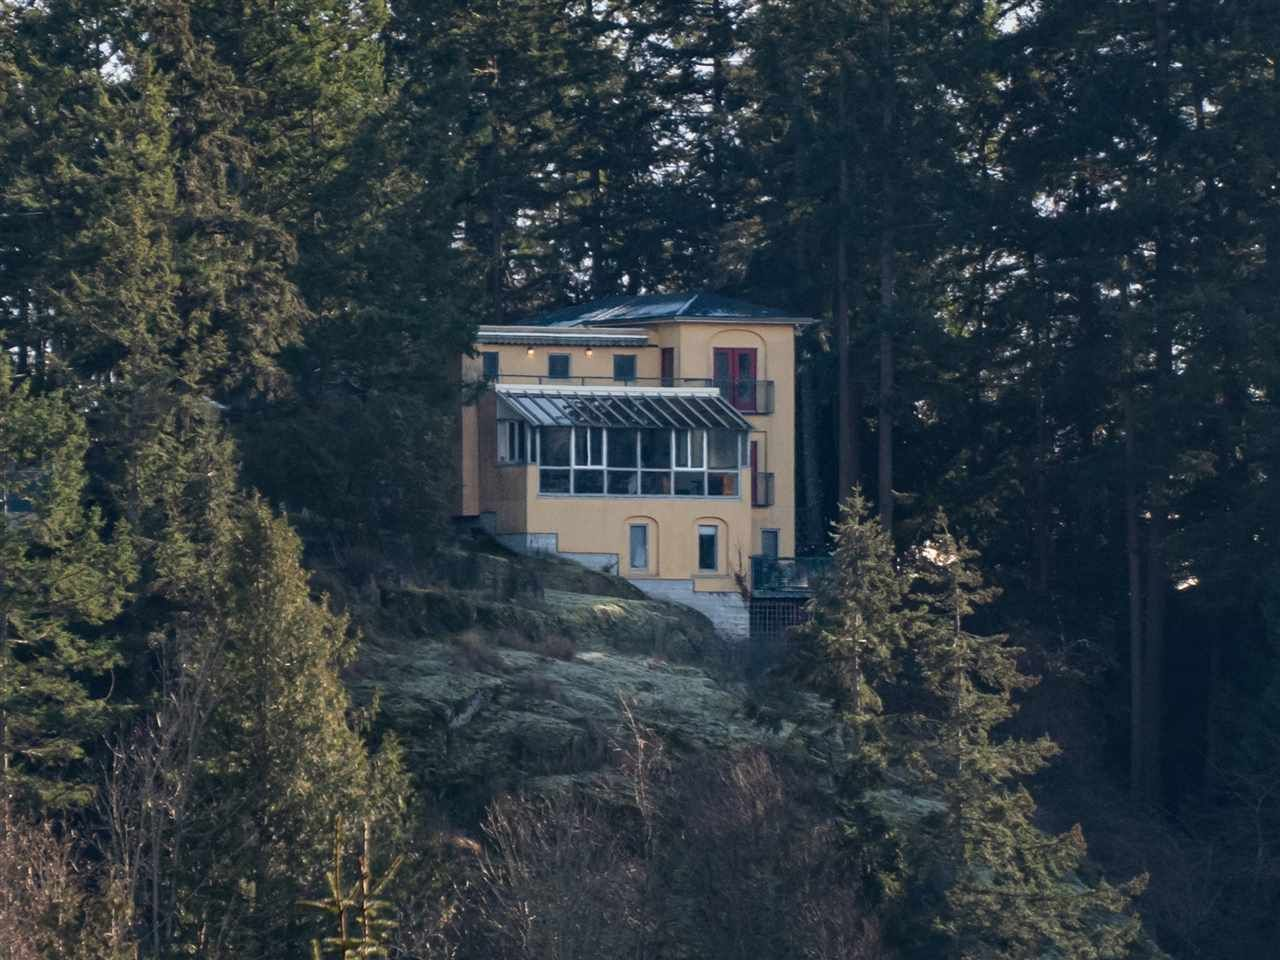 Impressive home perched atop a rocky outcropping